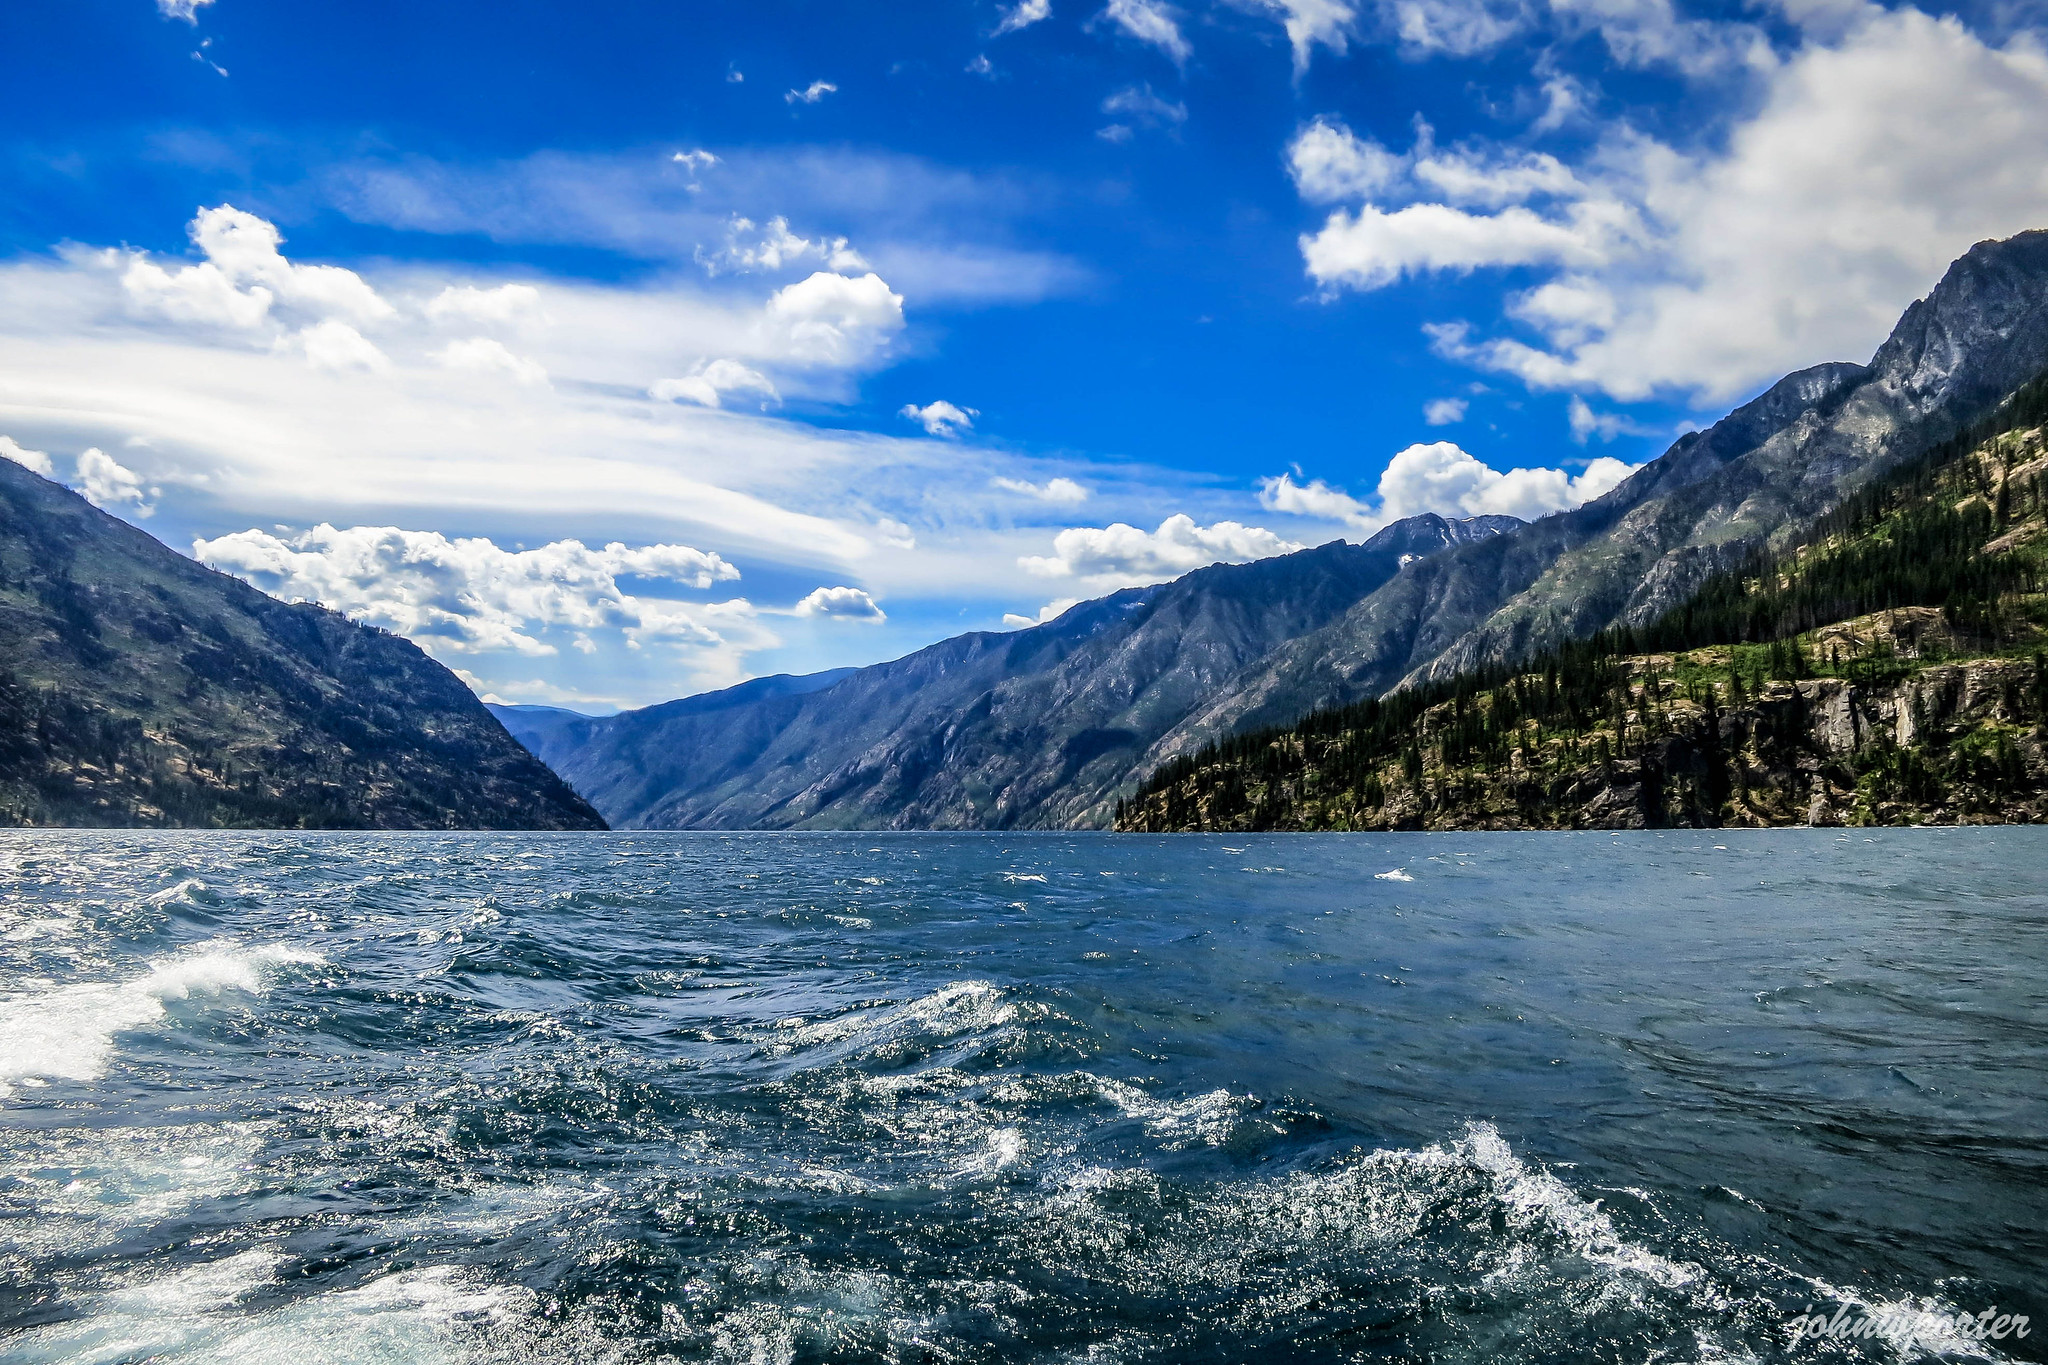 Lake Chelan upstream